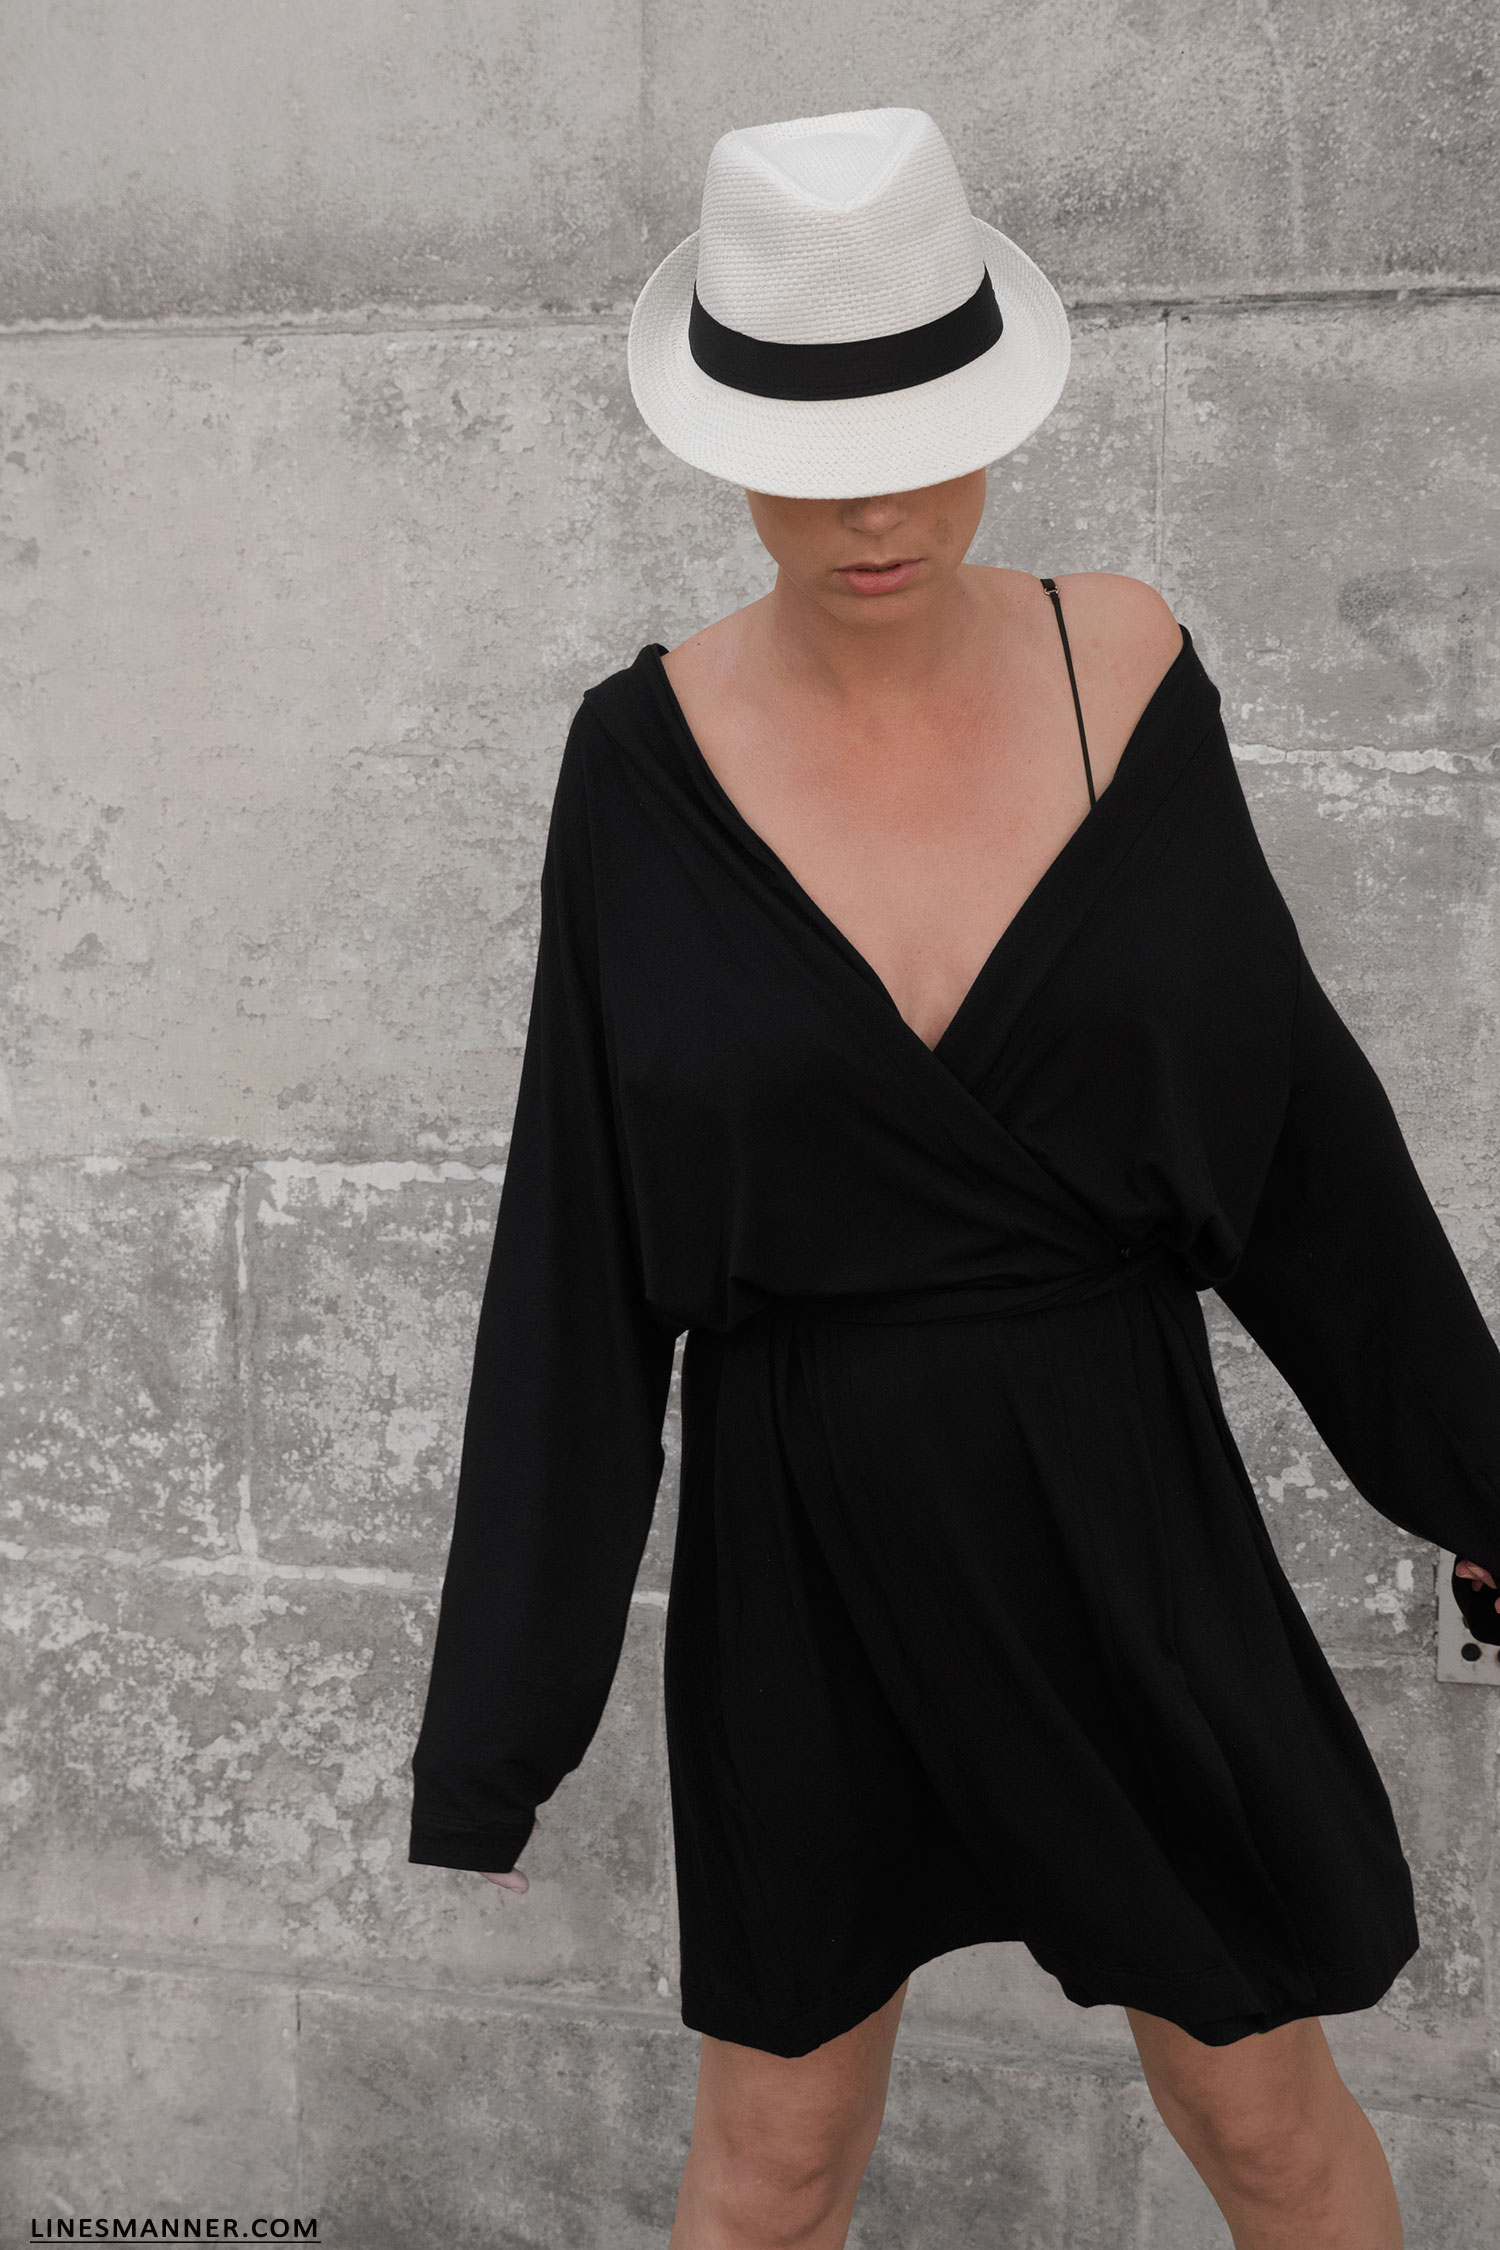 7ebd1a5a3e3e Lines-Manner-Woron-Sustainable-Eco Fashion-Vegan-Timeless-Softness-Little Black Dress-Wrapped Dress-Frecnh Riviera- Outfit-Minimal-Summer-Panama-13